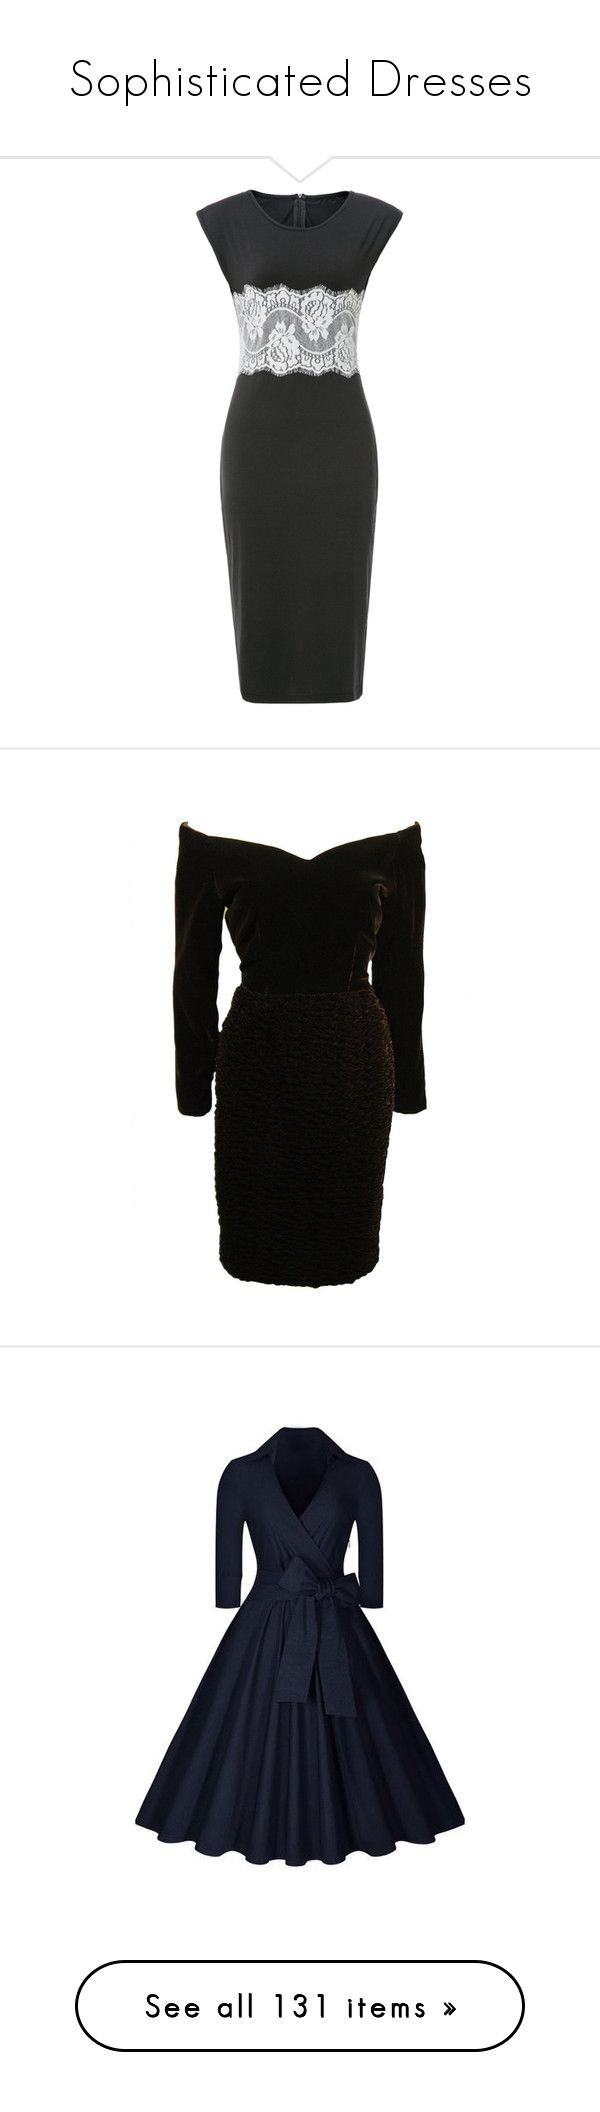 """""""Sophisticated Dresses"""" by kristy-corbin ❤ liked on Polyvore featuring dresses, lace panel bodycon dress, lace insert dress, body con dresses, short sleeve bodycon dress, lace inset dress, cocktail dresses, brown, long-sleeve velvet dresses and velvet dress"""